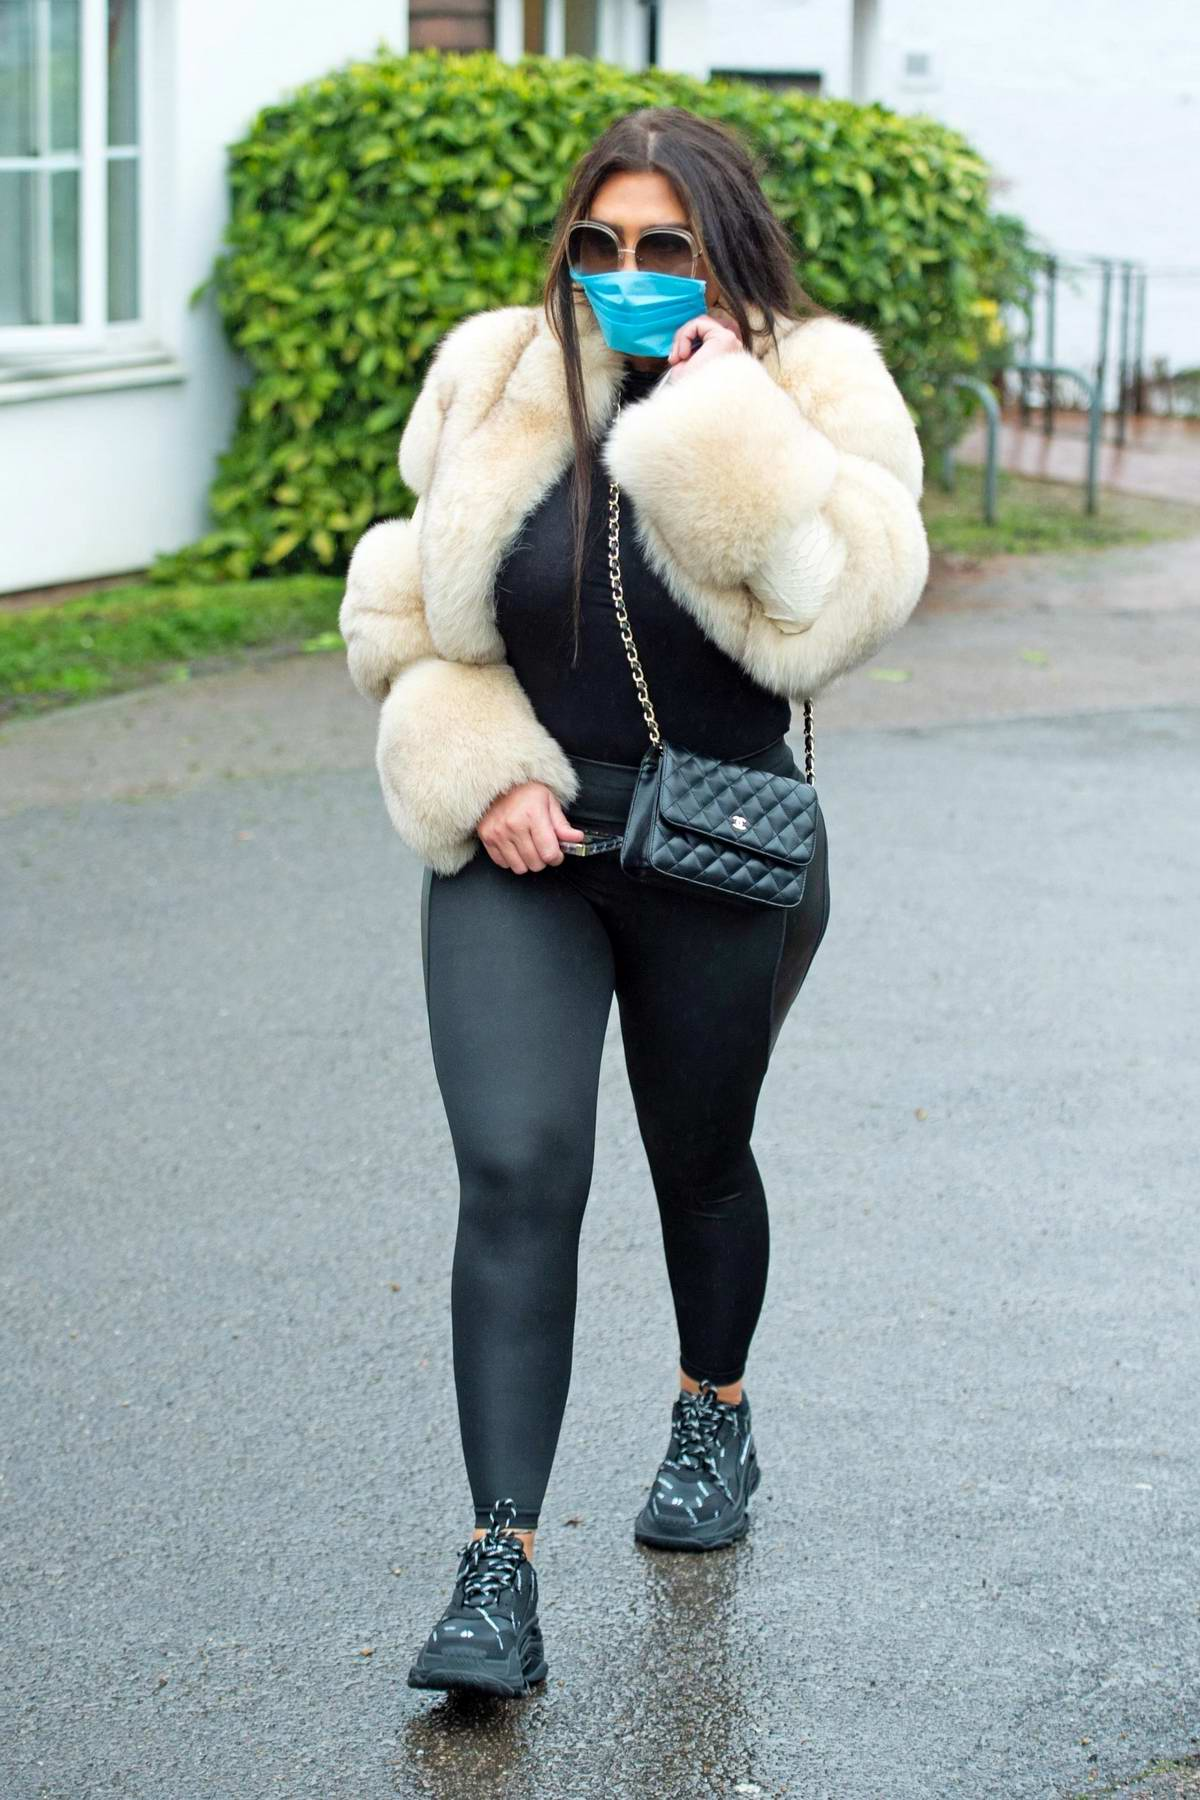 Lauren Goodger seen wearing leggings and a fur coat along with a blue mask as she leaves her home in Essex, UK